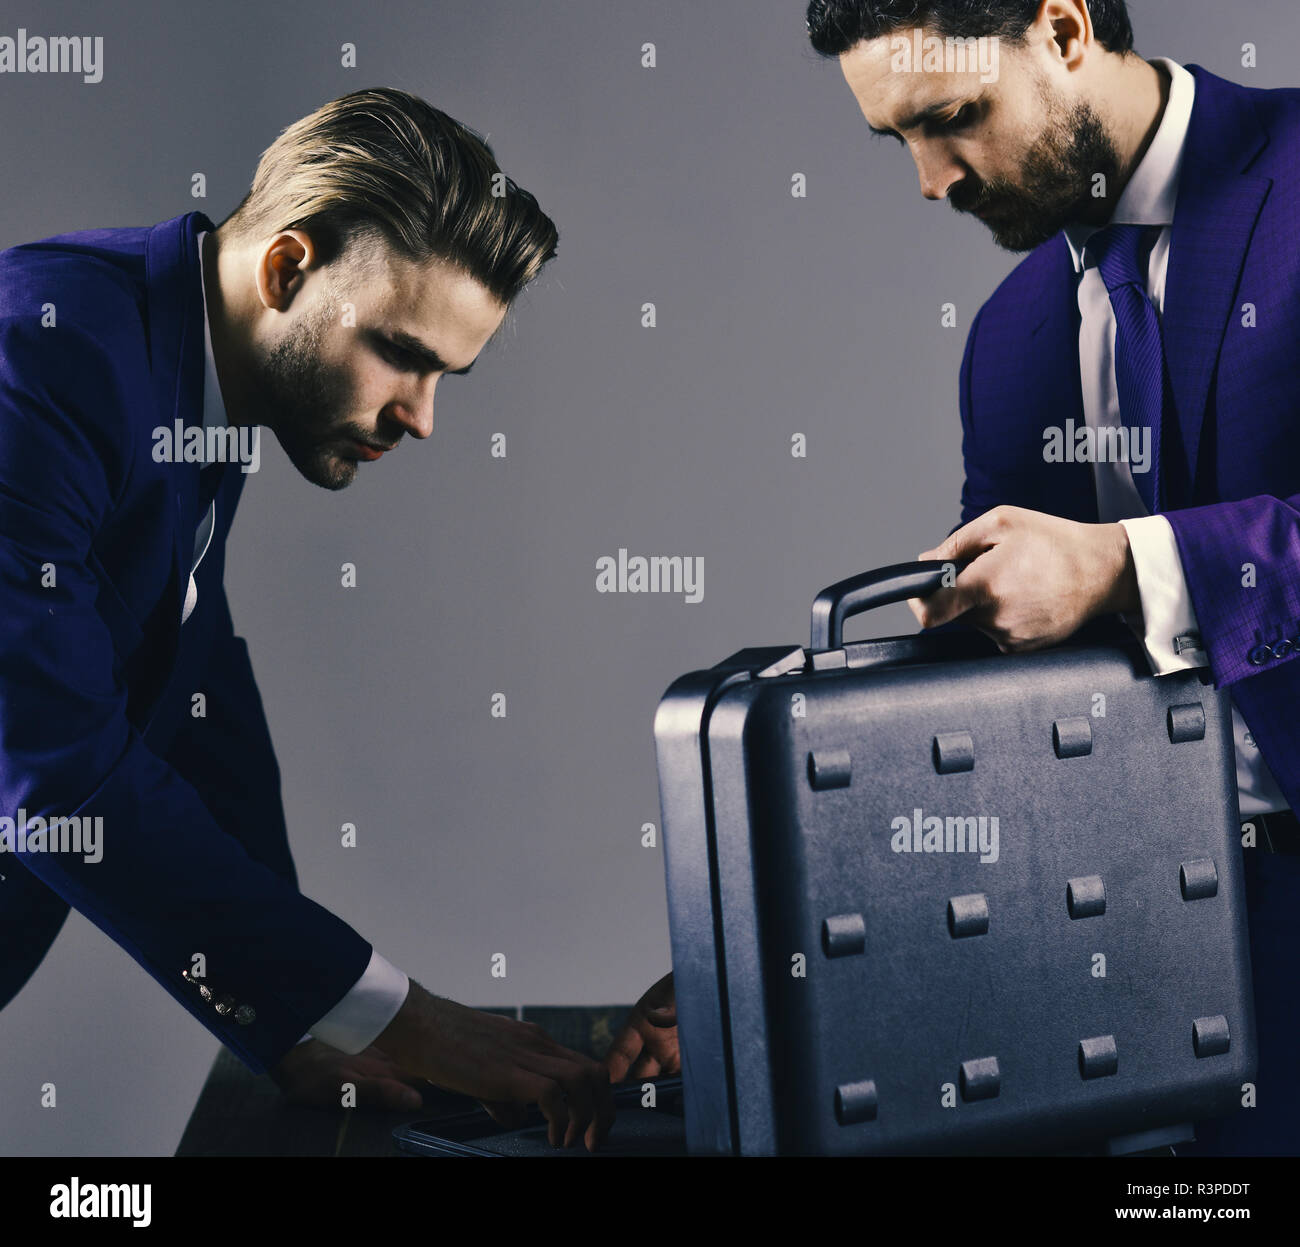 Businessmen offer illegal transaction or bribe. Business exchange concept. Businessmen look into opened briefcase on dark background. Men in suit or b - Stock Image